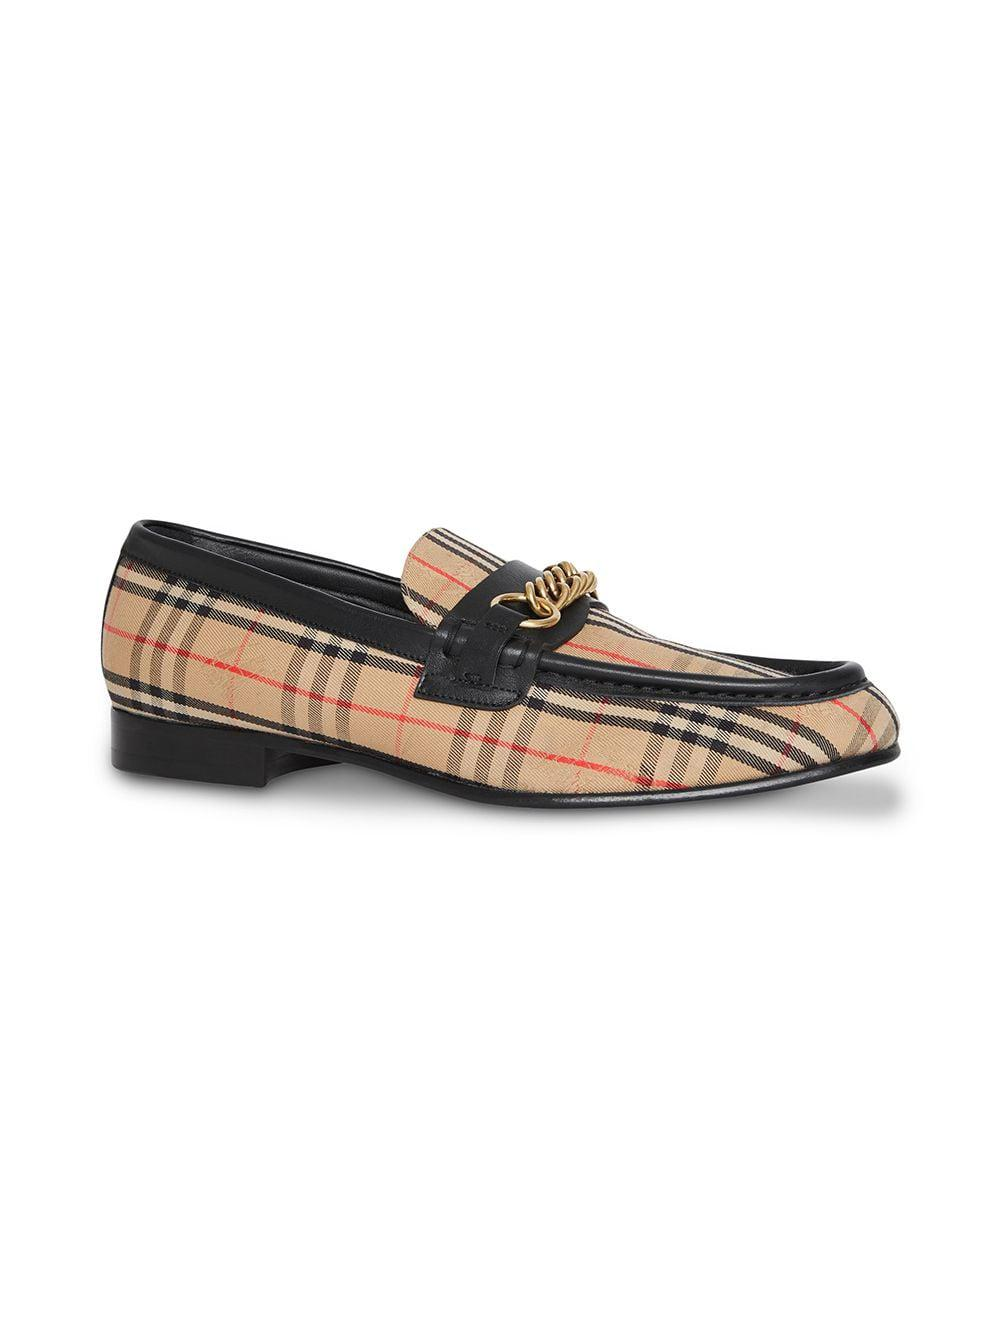 c2024485798 Burberry The 1983 Check Link Loafer - Save 40% - Lyst